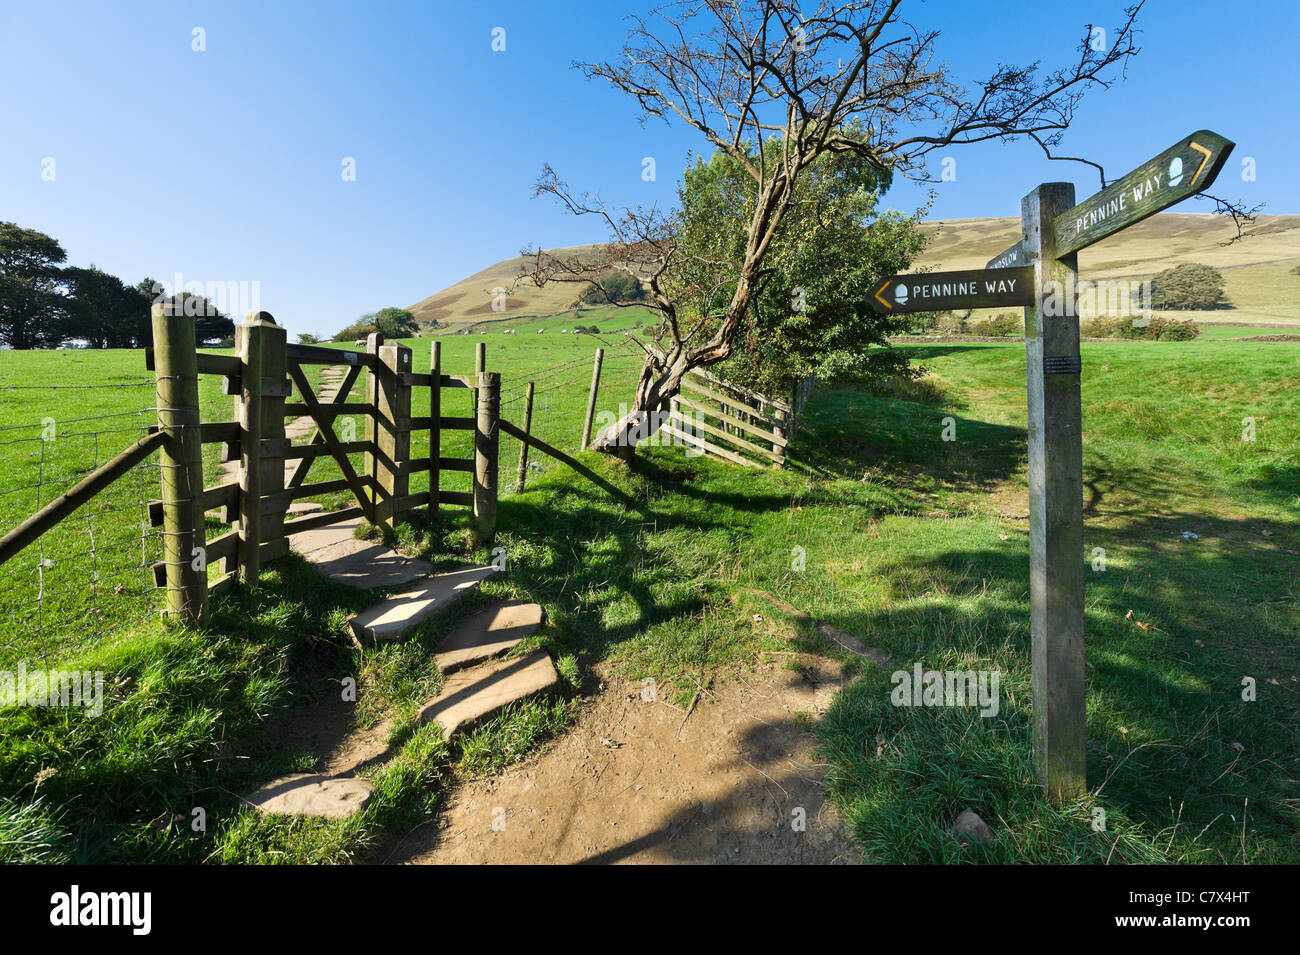 Pennine Way. Signpost for The Pennine Way near its start in Edale, Peak District National Park, Derbyshire, England, - Stock Image